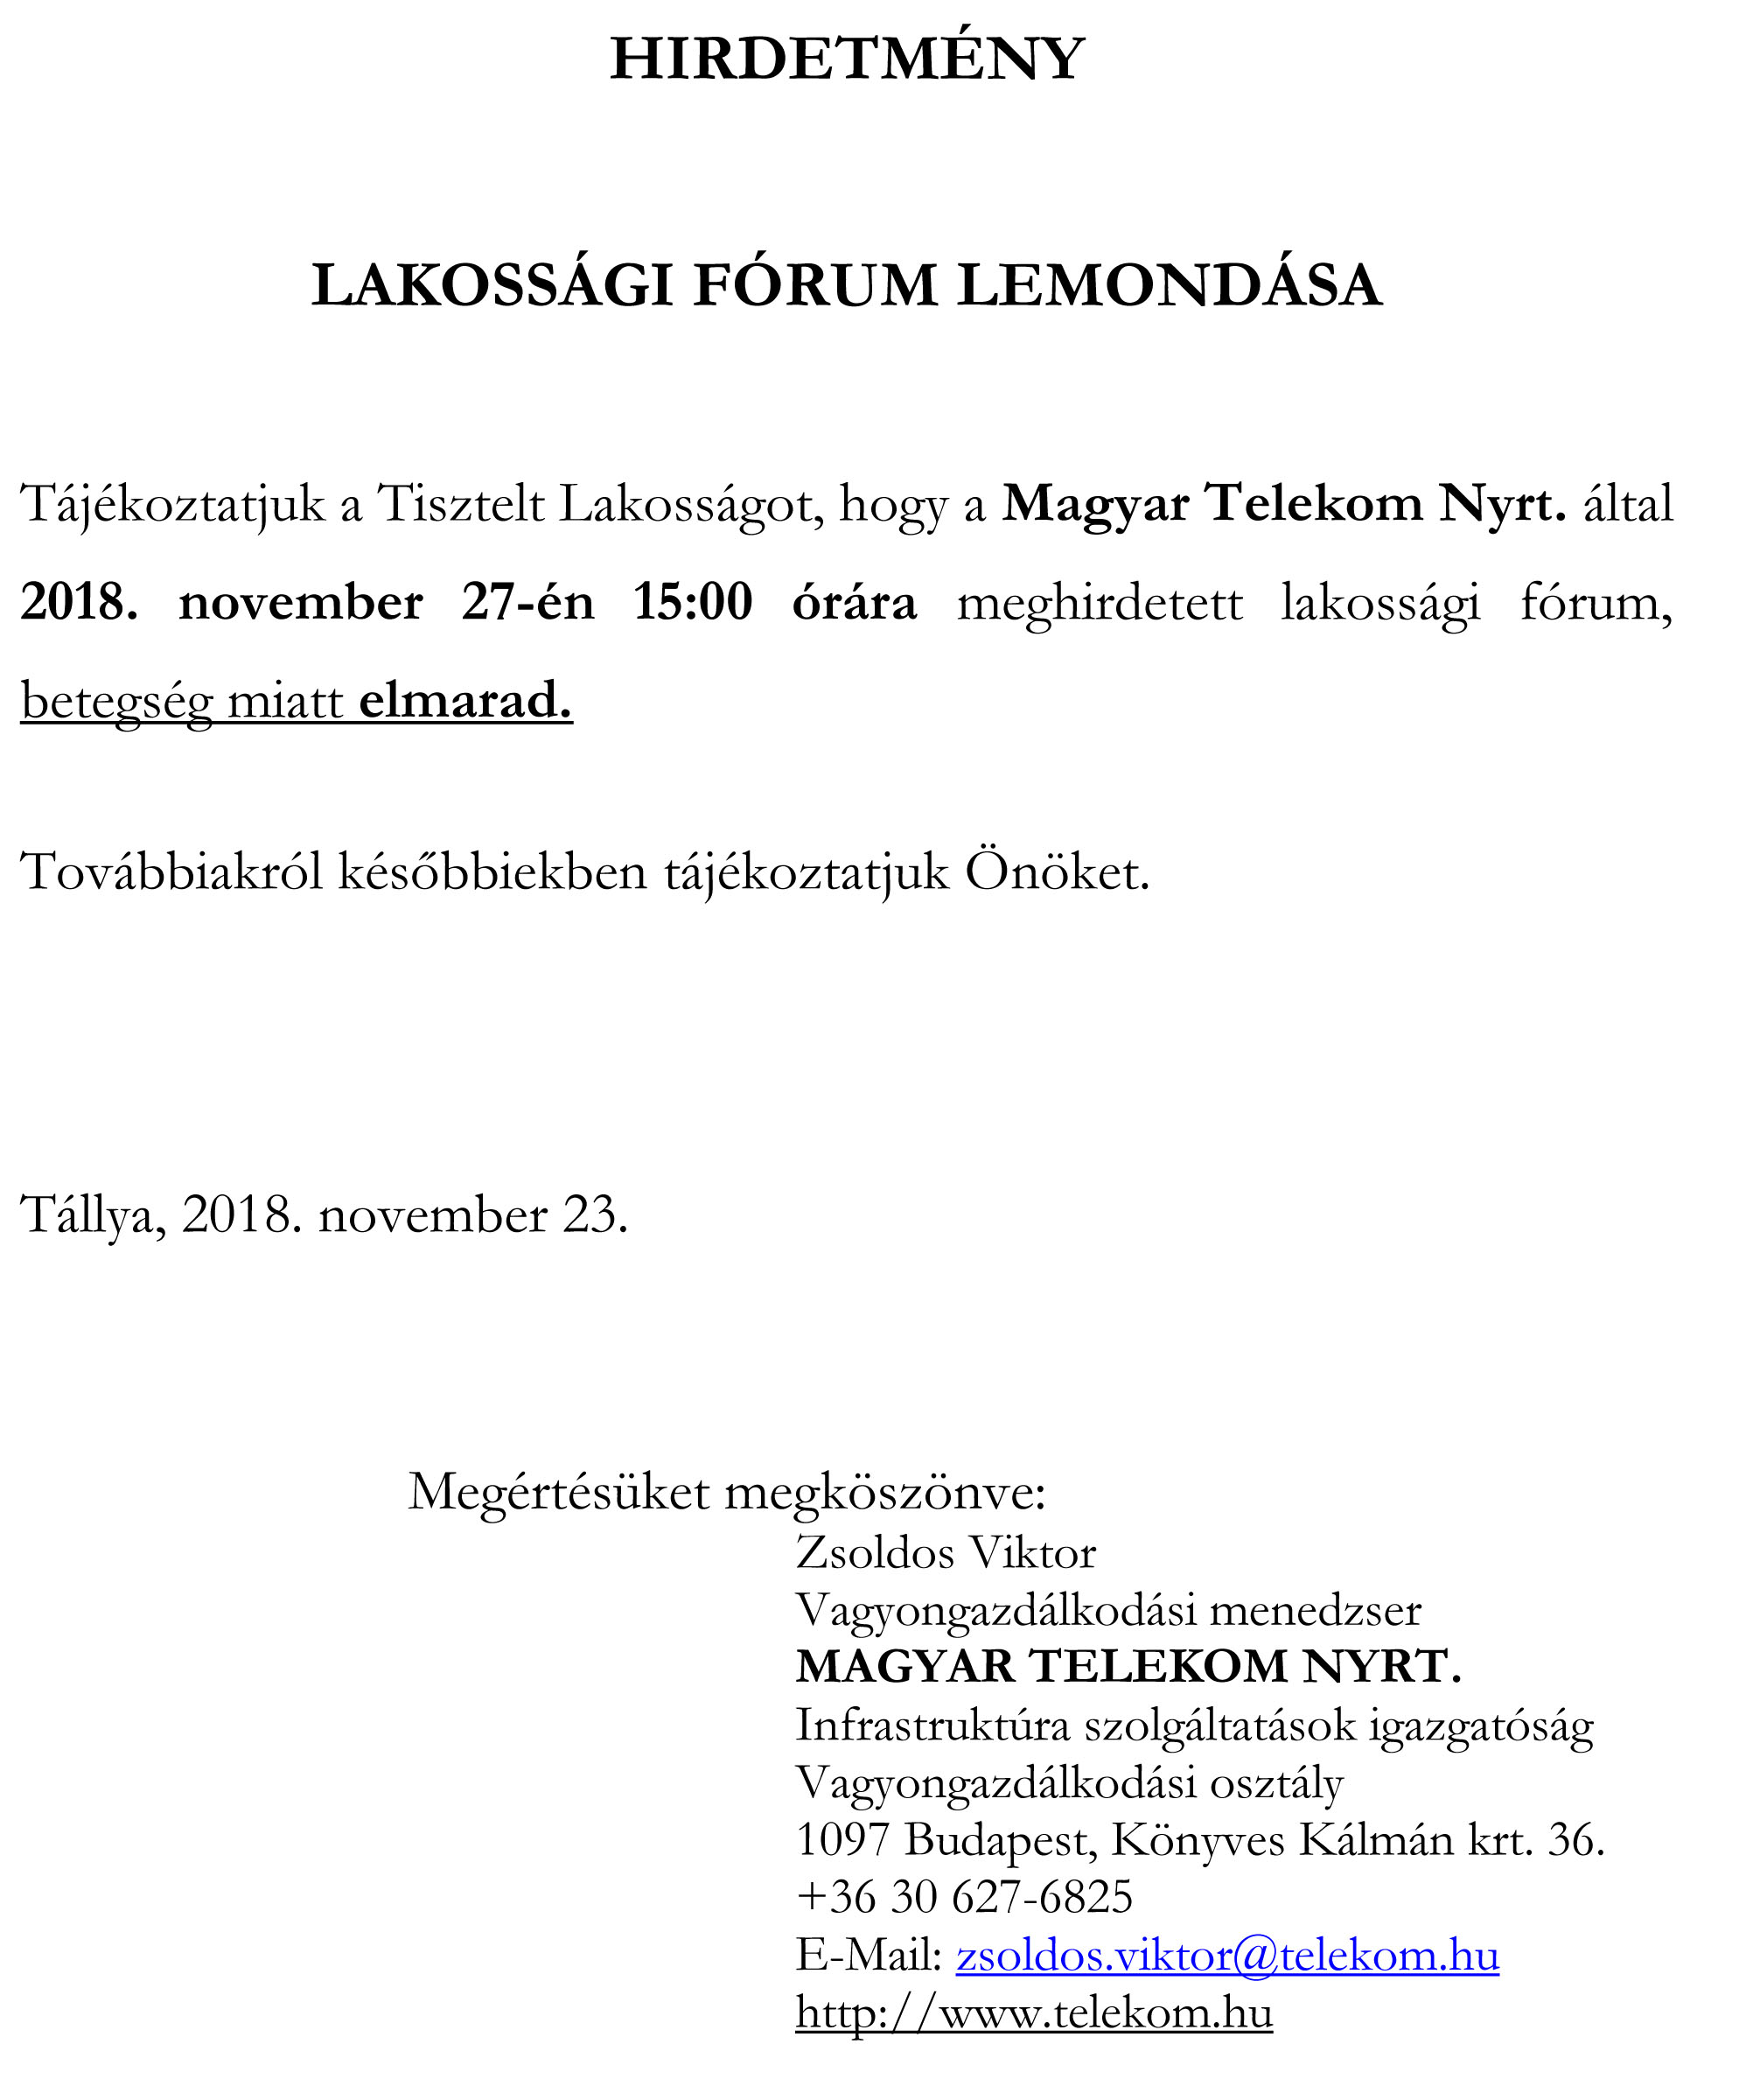 tallya lakossagi forum1